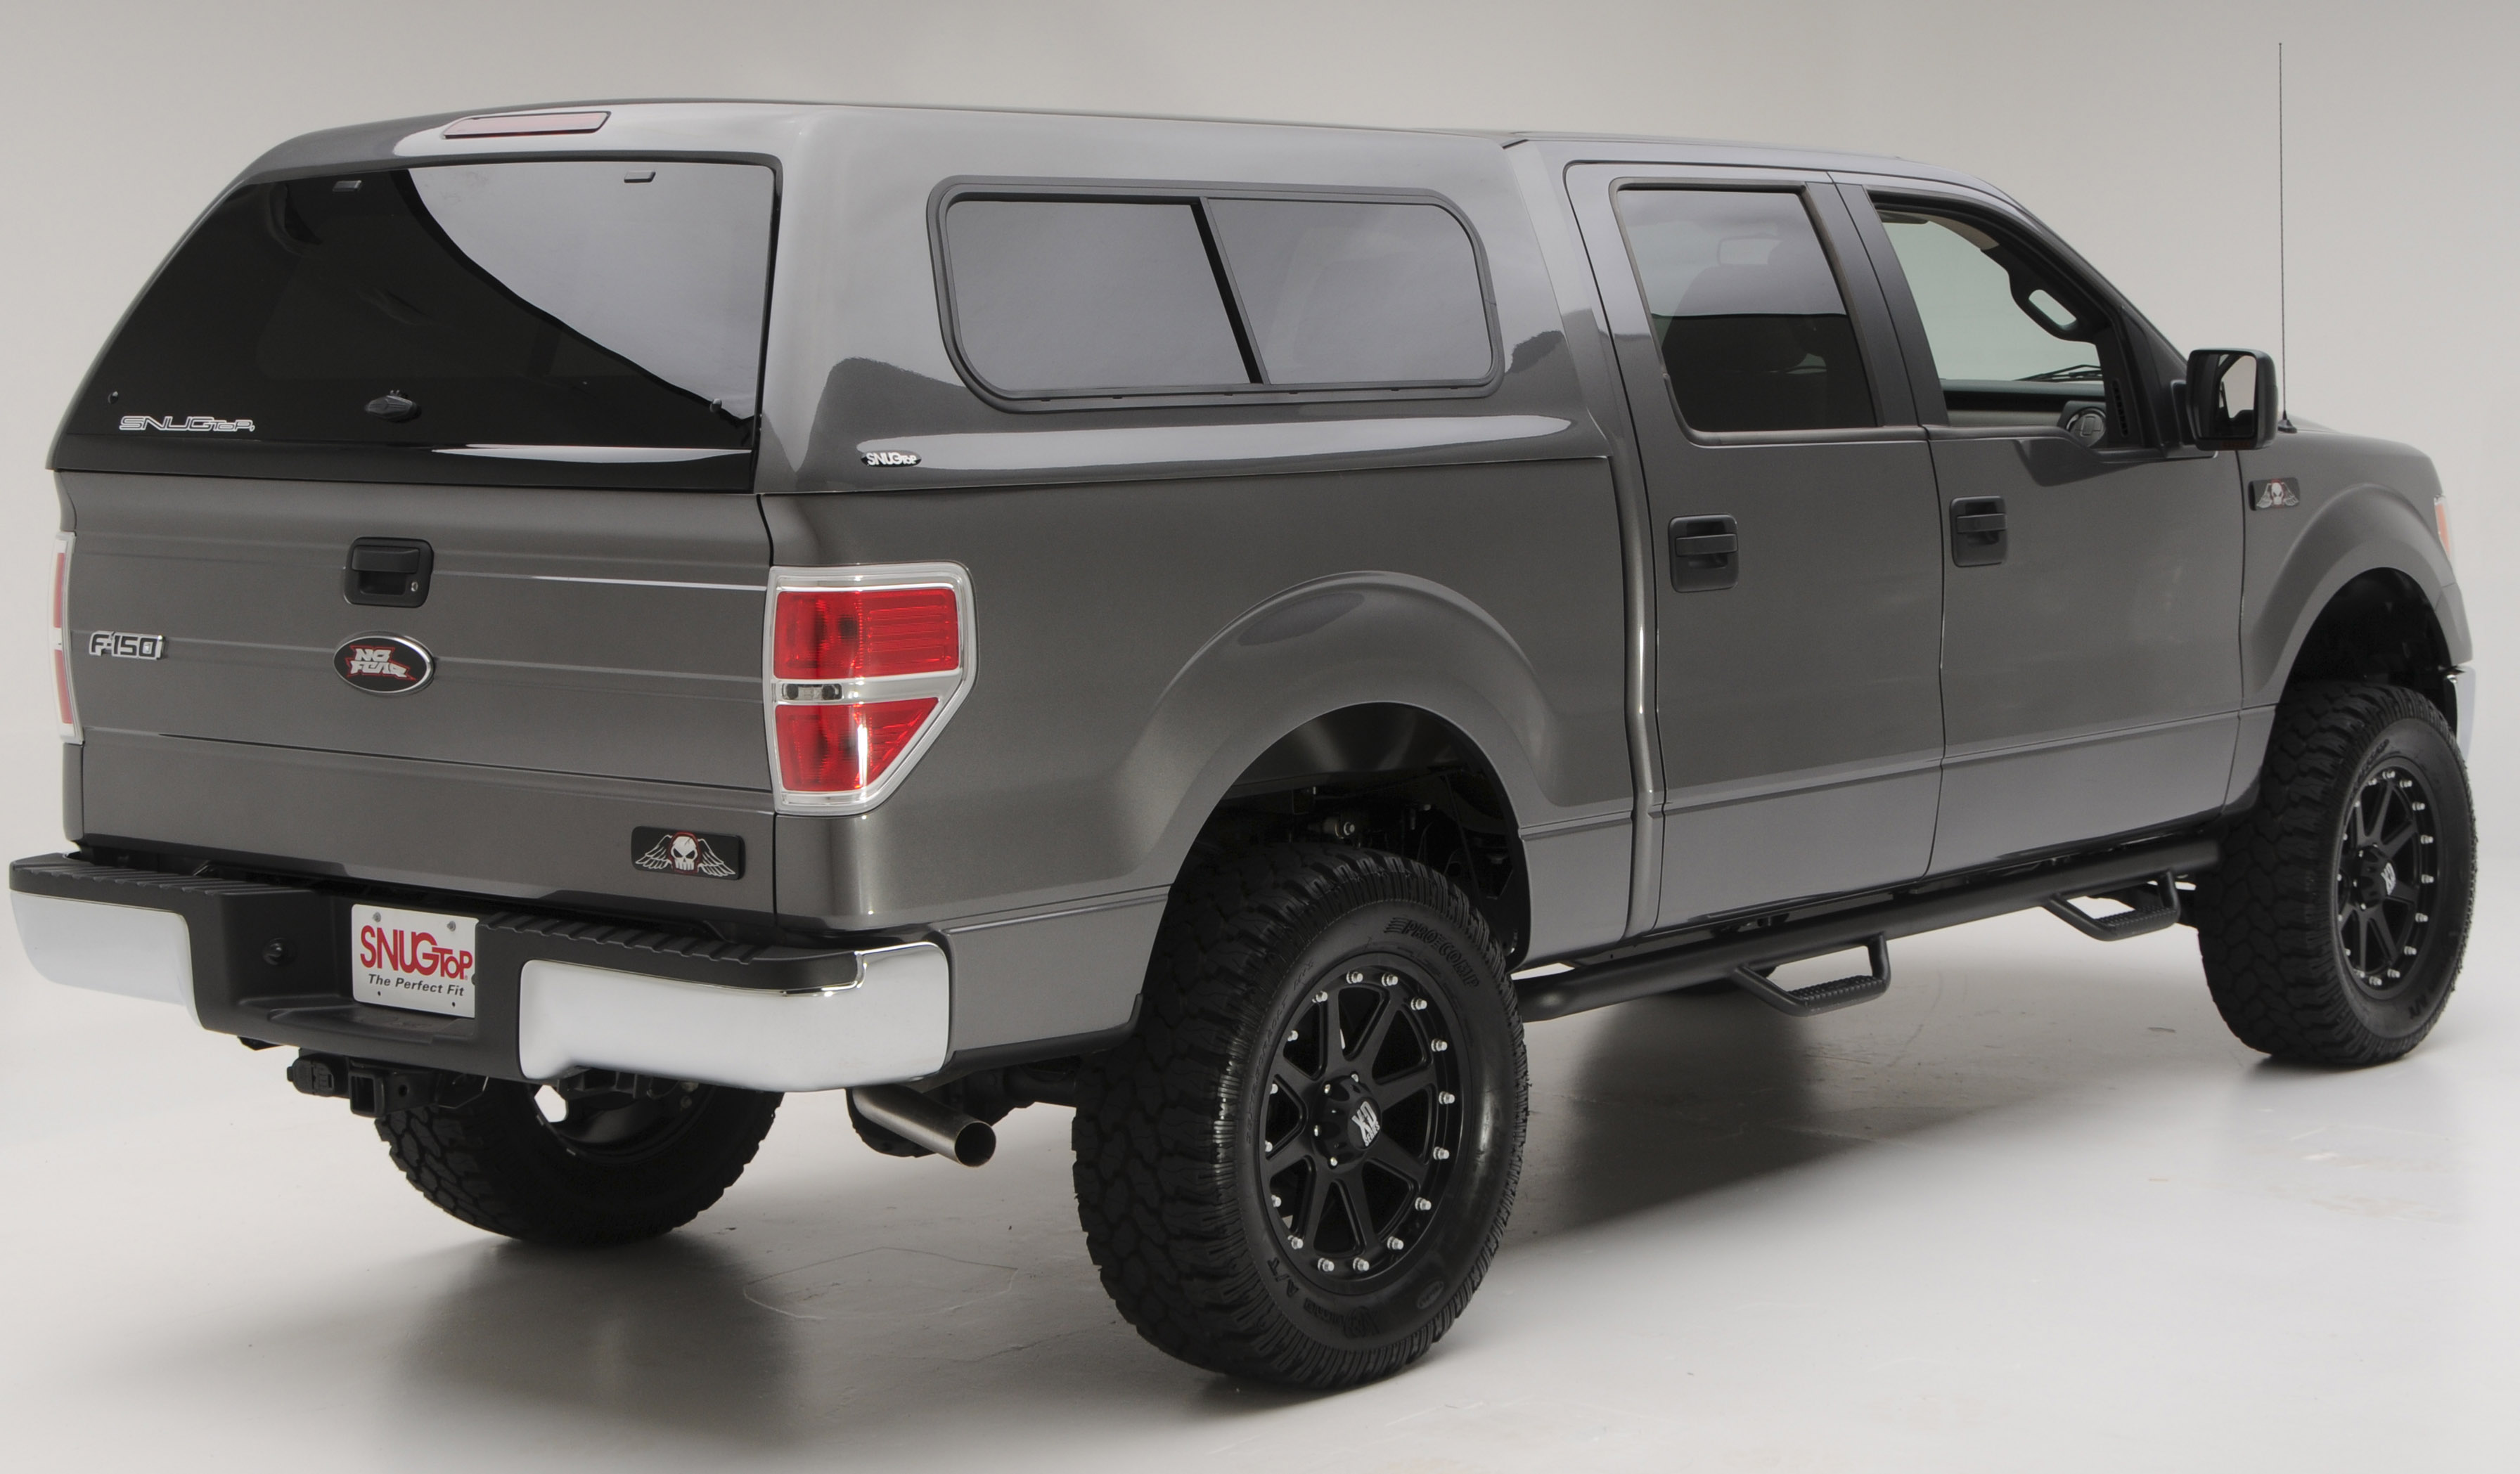 2014 ford f150 order options autos post. Black Bedroom Furniture Sets. Home Design Ideas